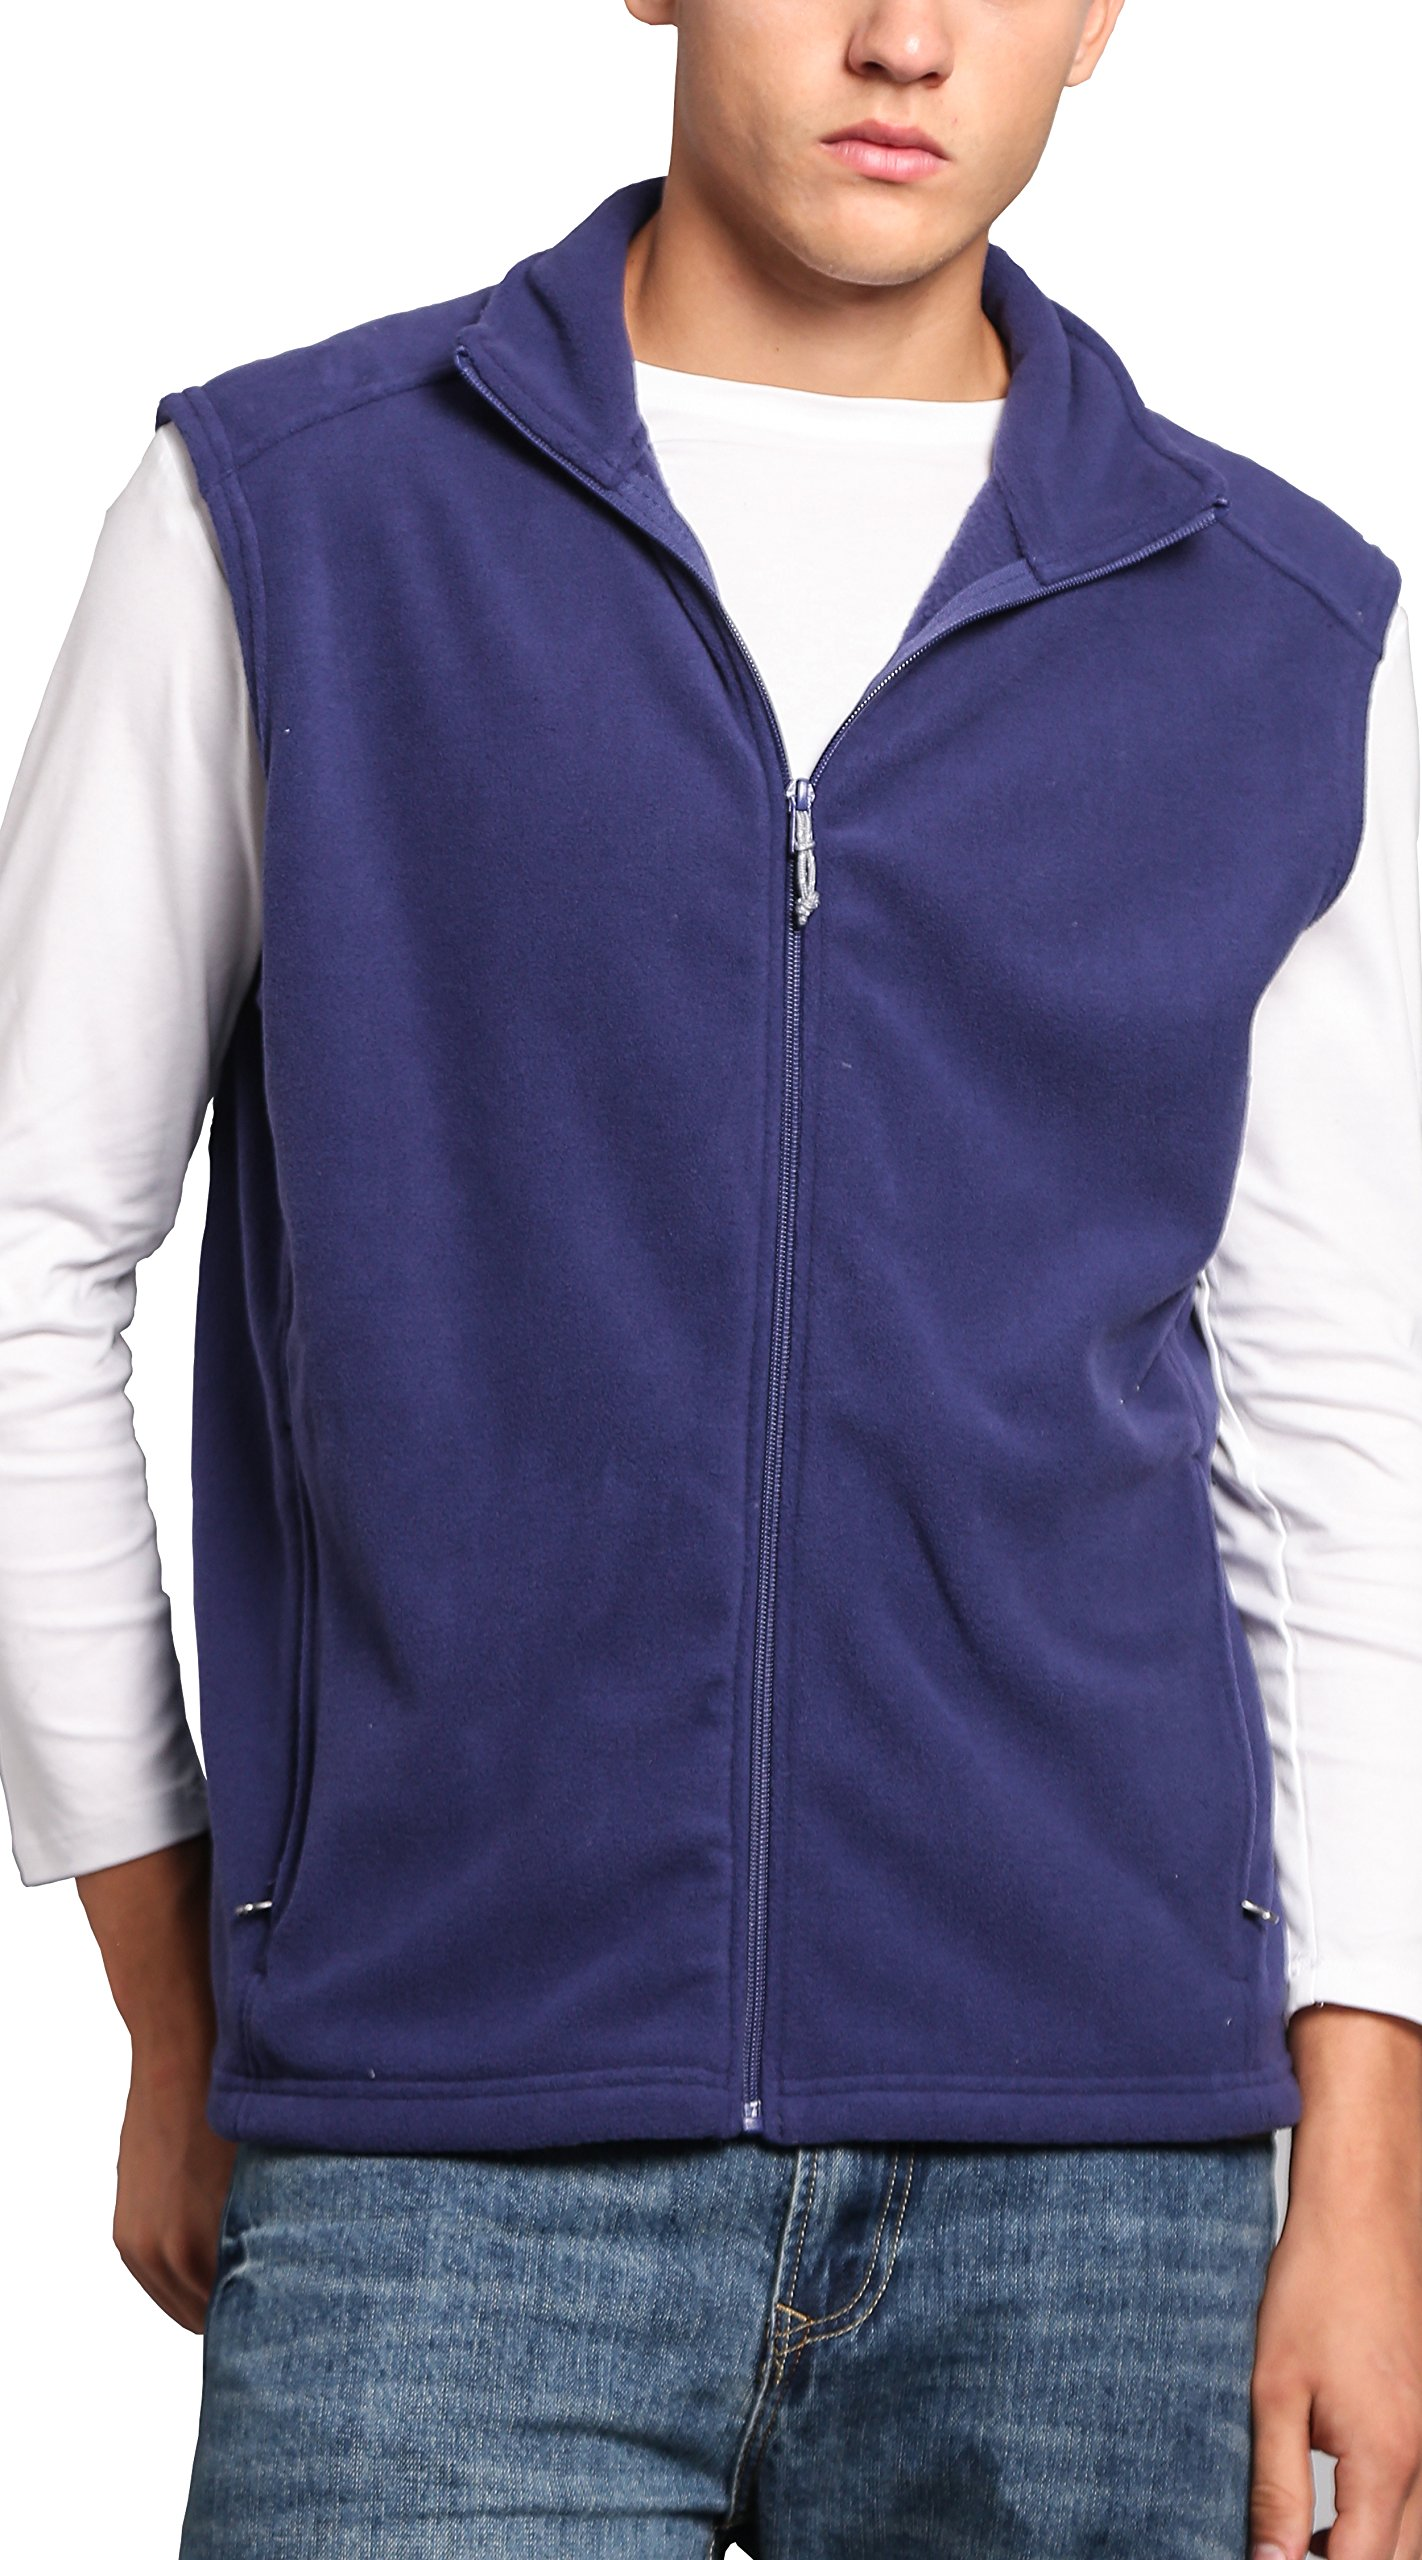 Oalka Men's Full Zip Soft Sport Fleece Vests Blue L by Oalka